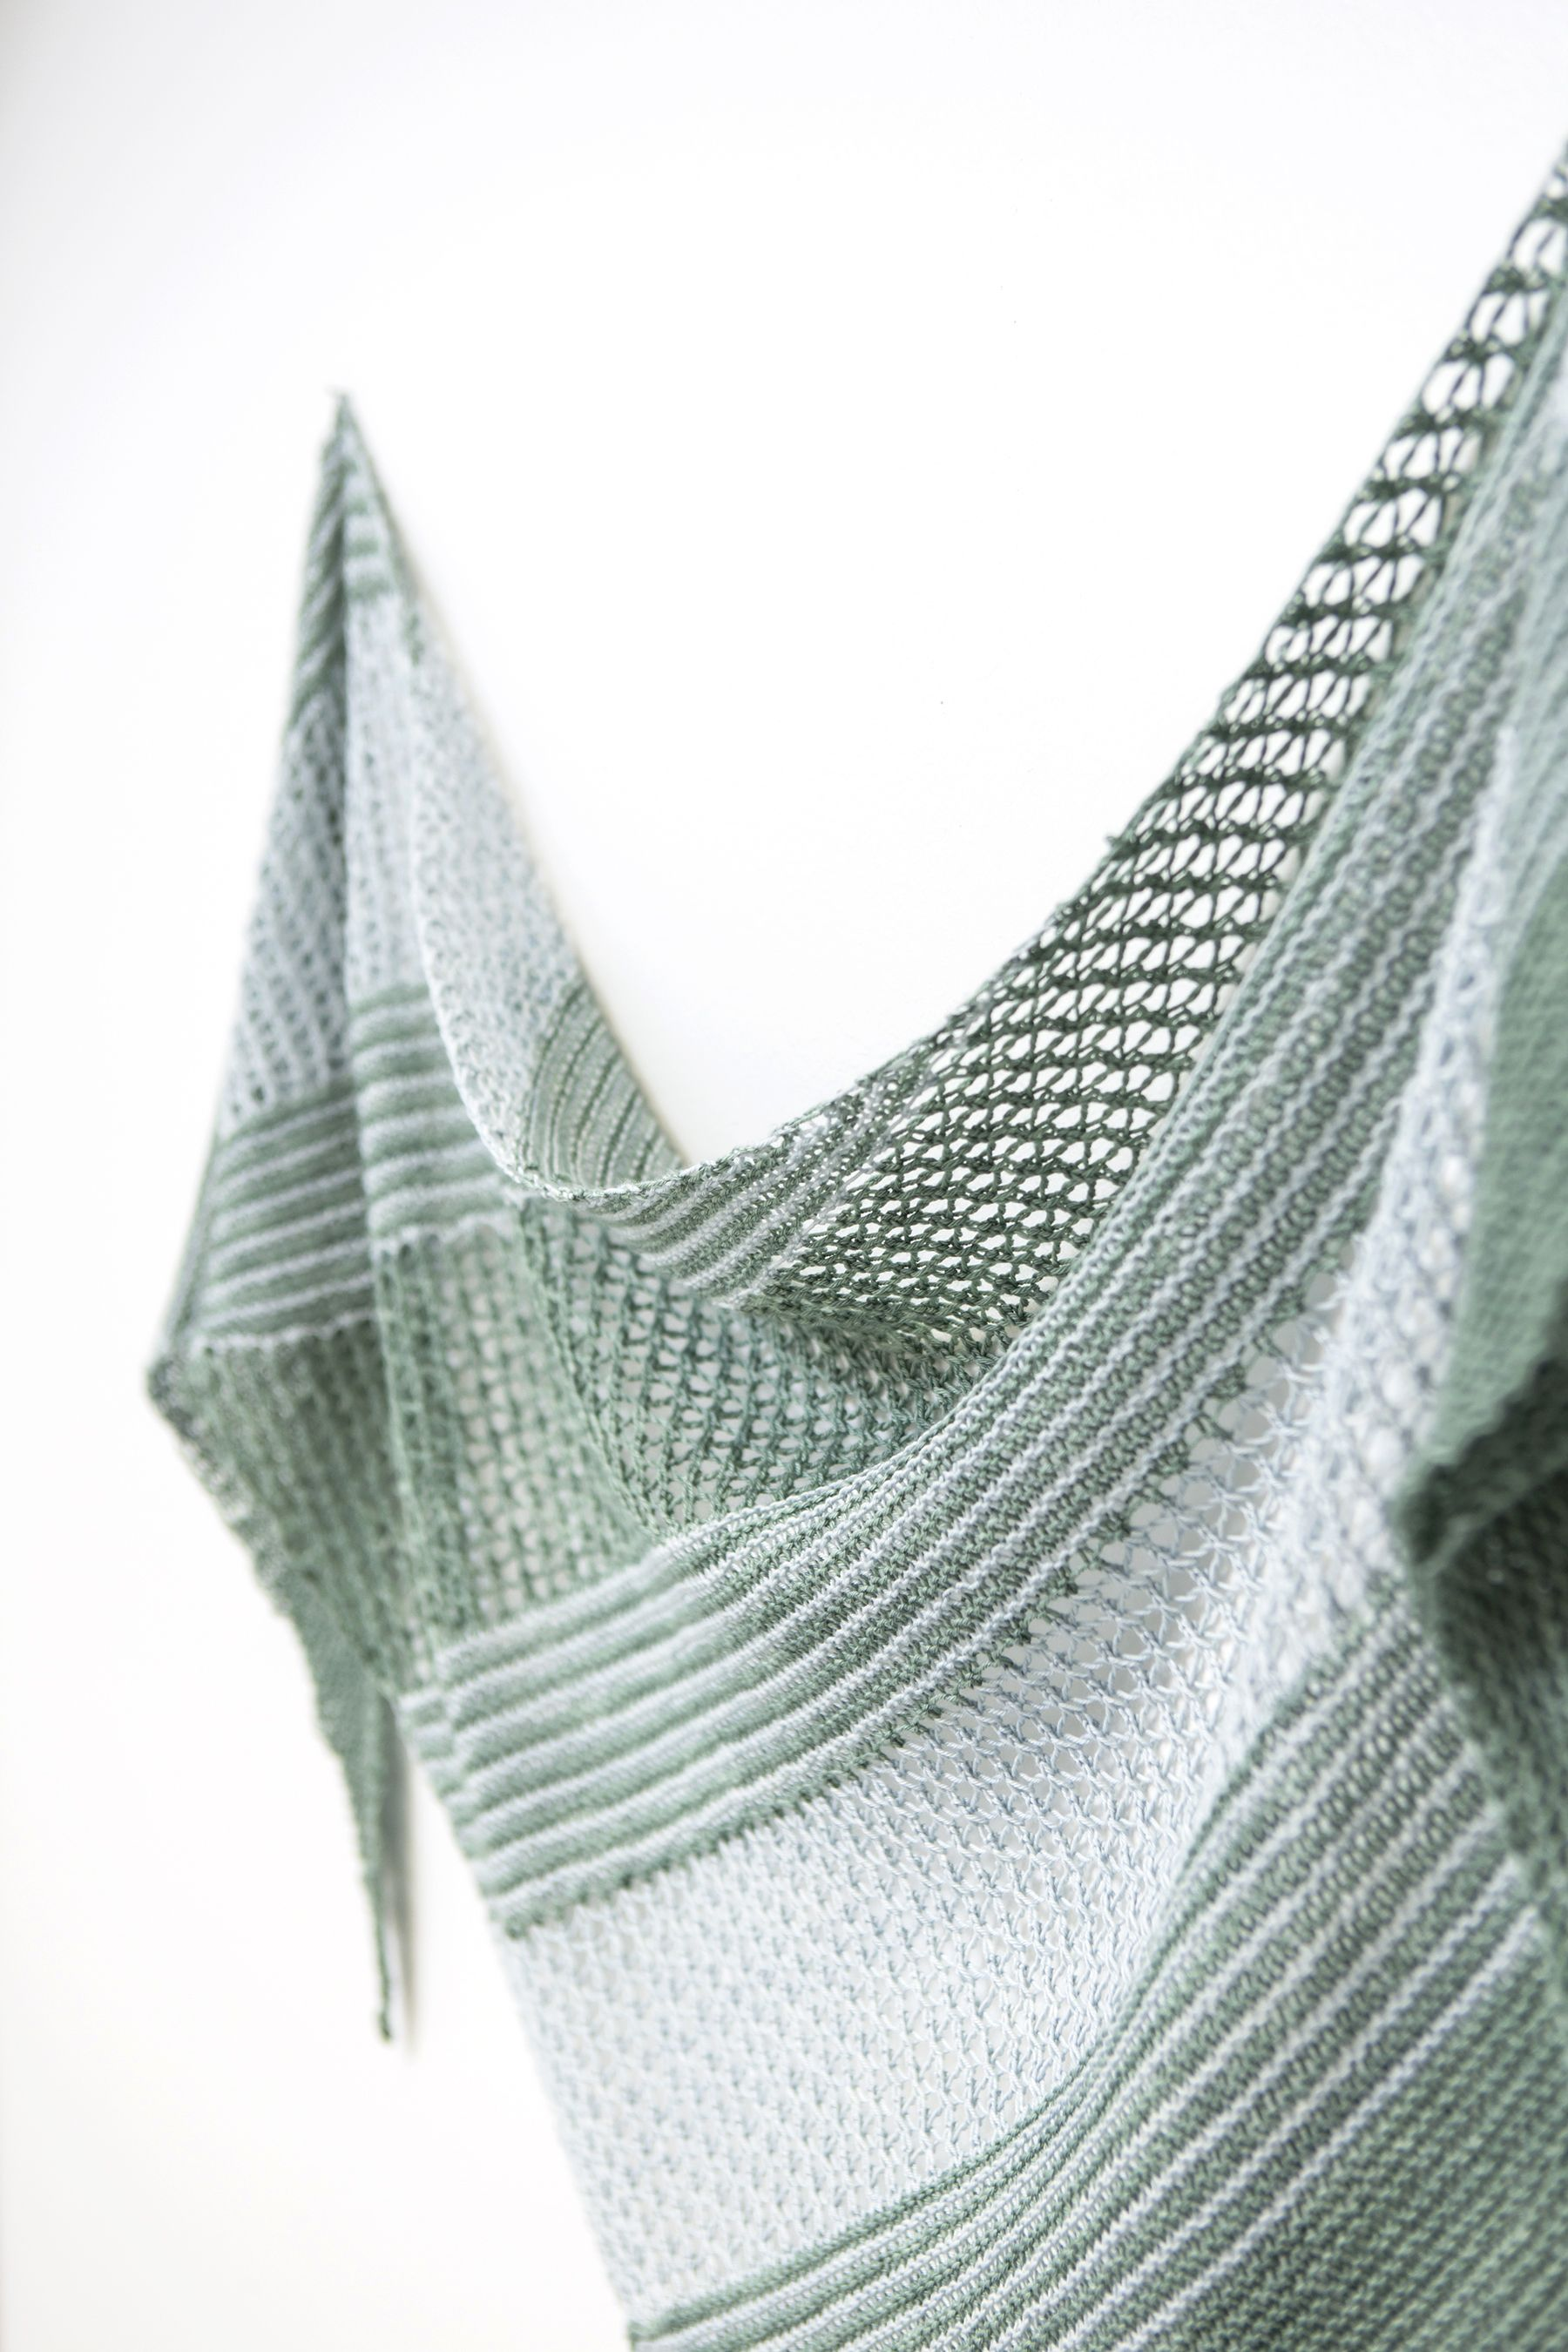 Sea Grass pattern by Janina Kallio | Finger knitting, Knit patterns ...